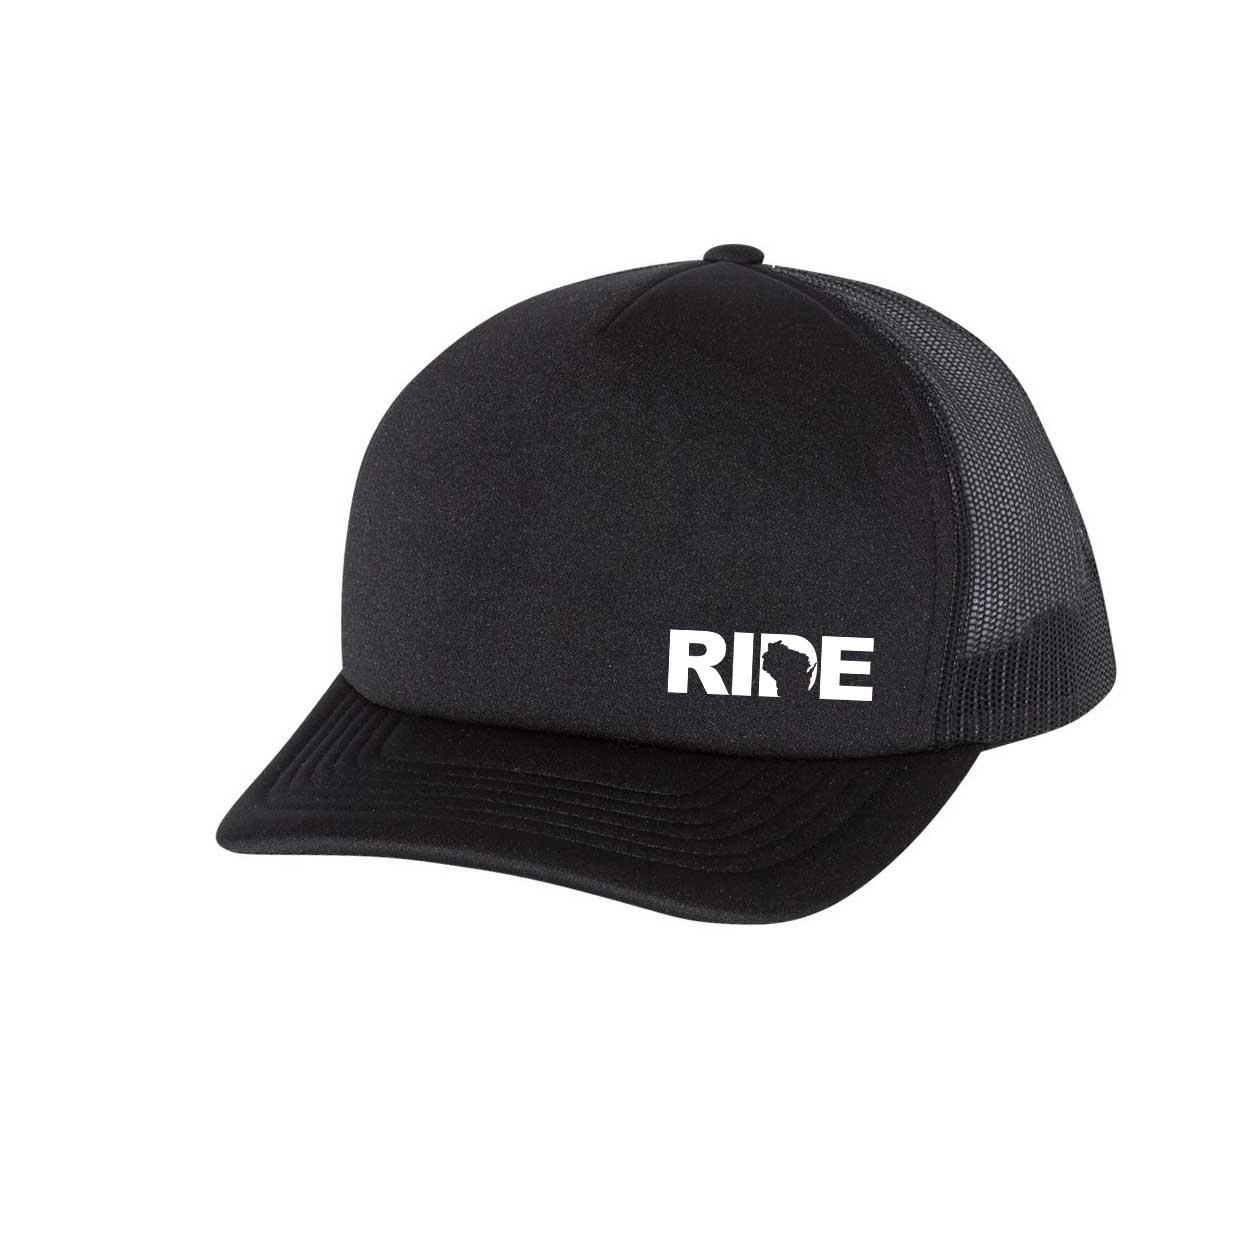 Ride Wisconsin Night Out Premium Foam Trucker Snapback Hat Black (White Logo)